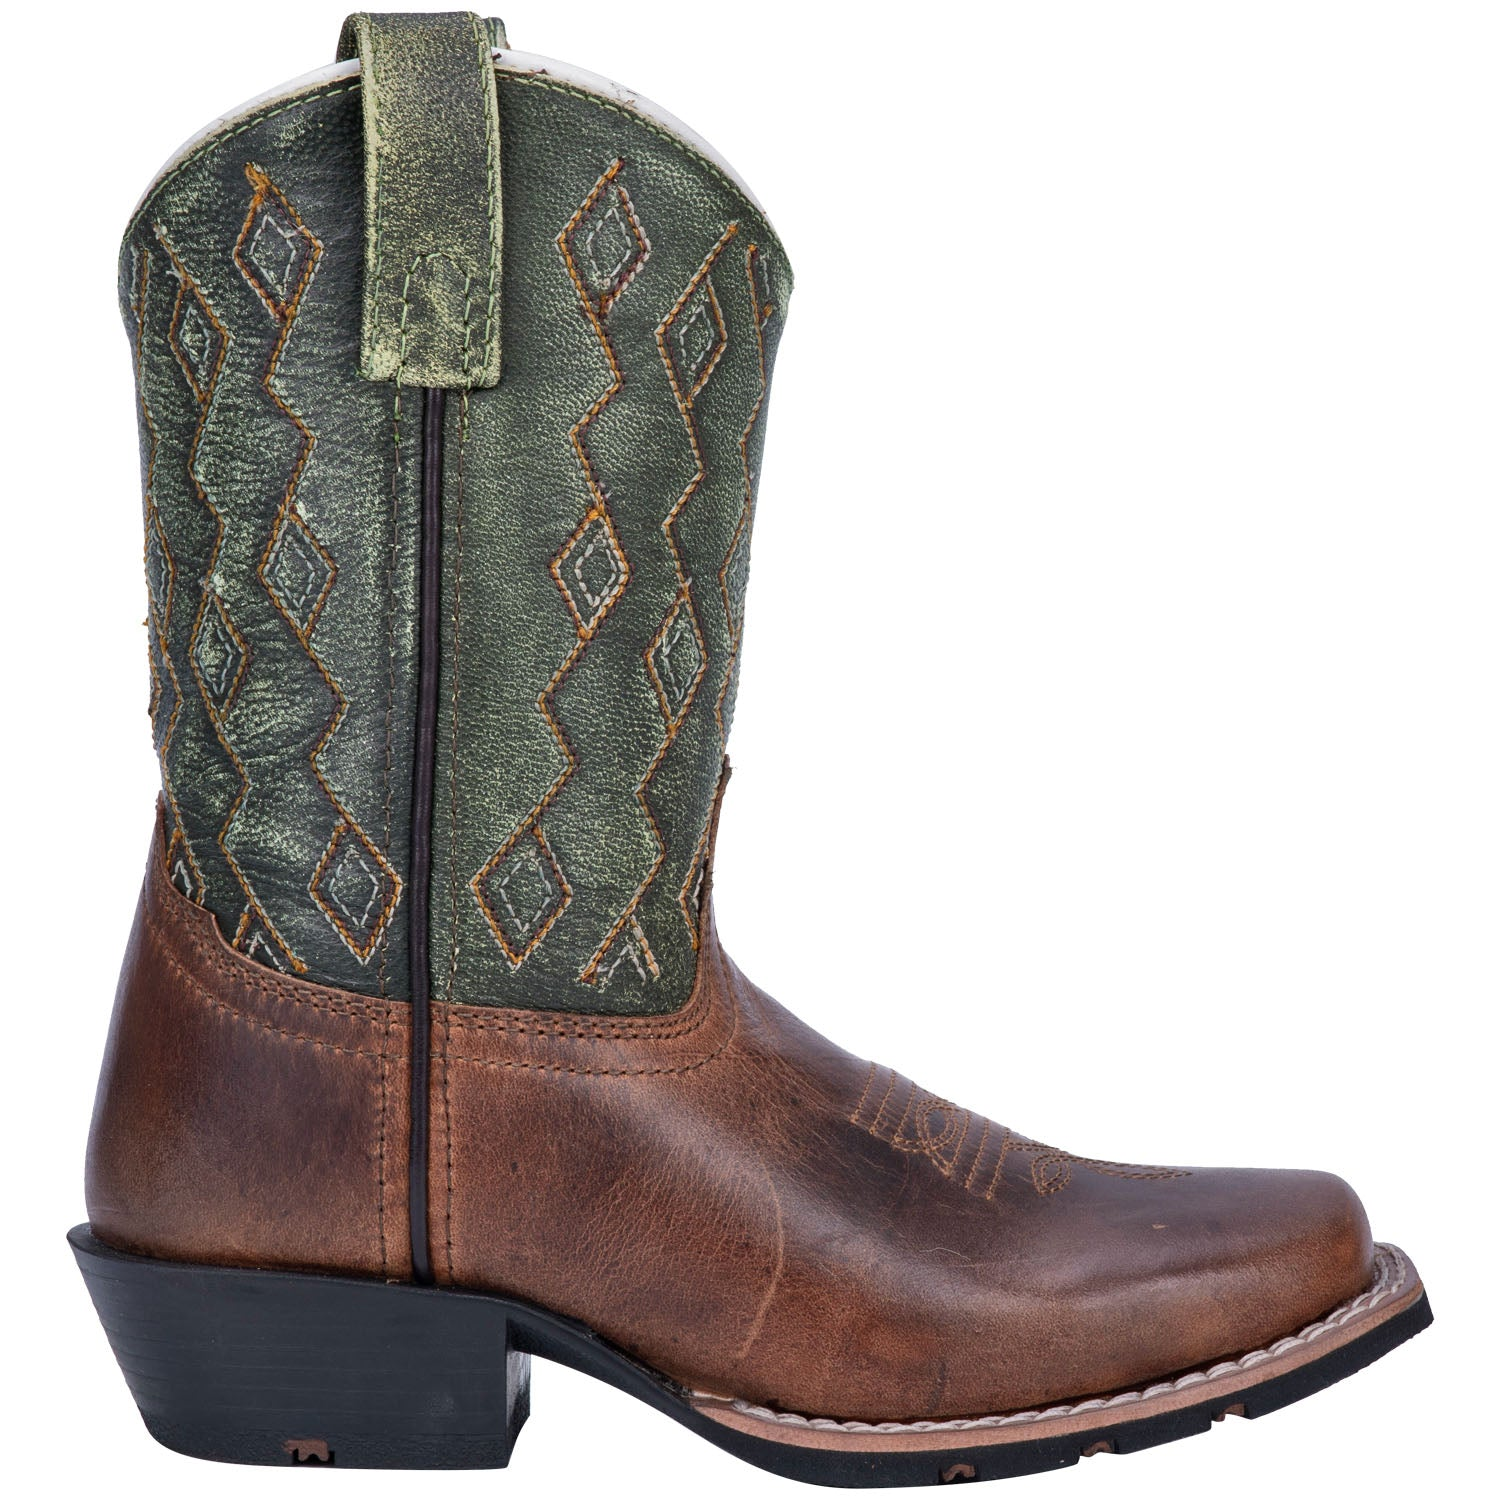 TEDDY LEATHER YOUTH BOOT 4254314659882